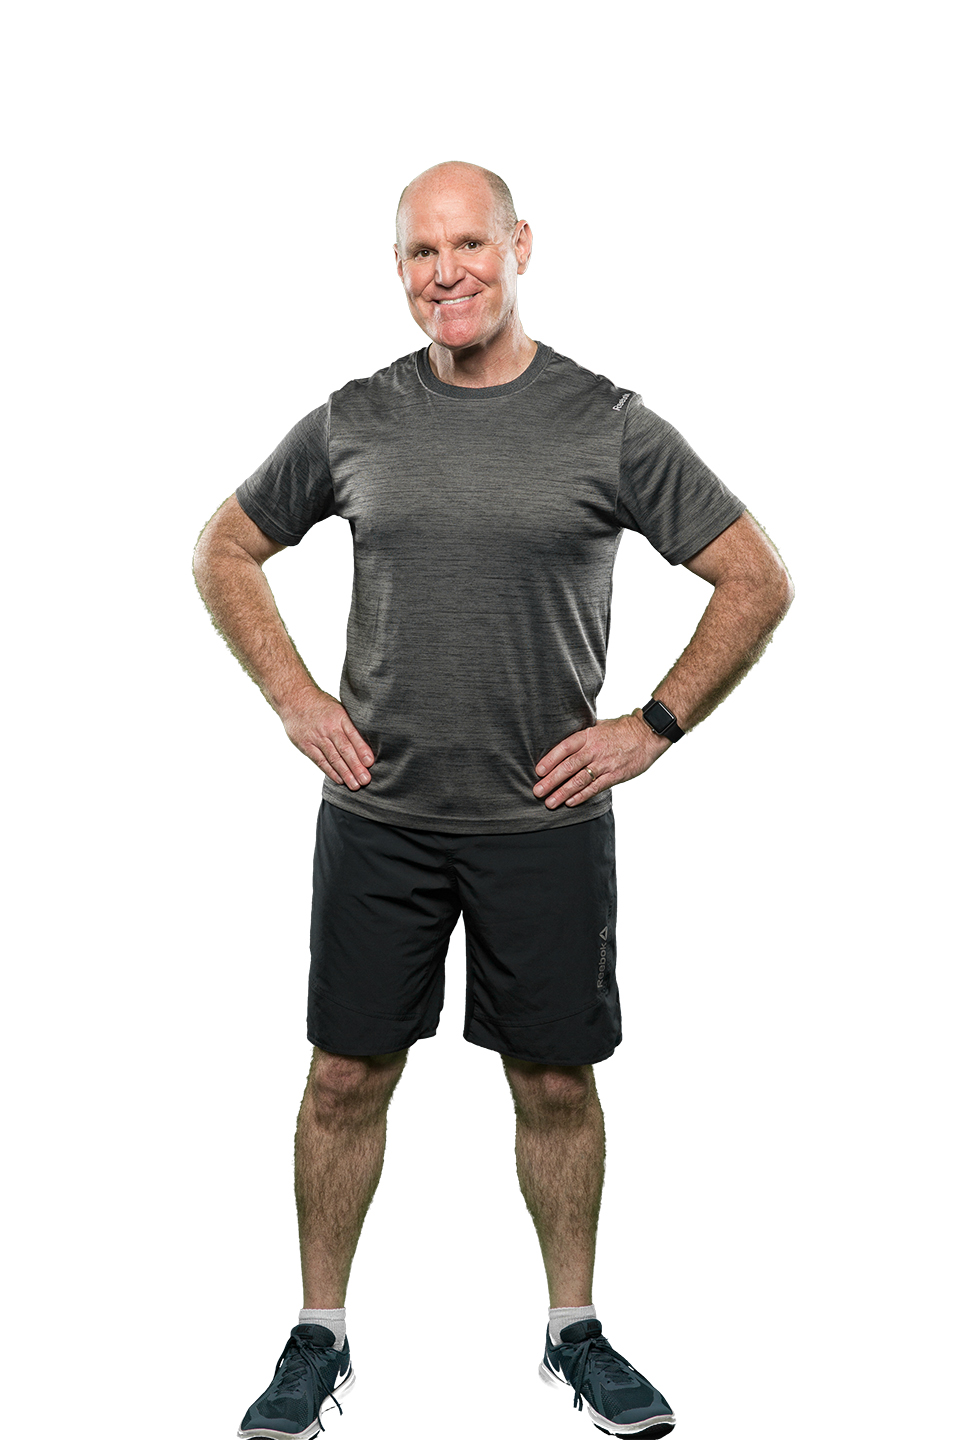 Ric - BodyPump InstructorRic haunted